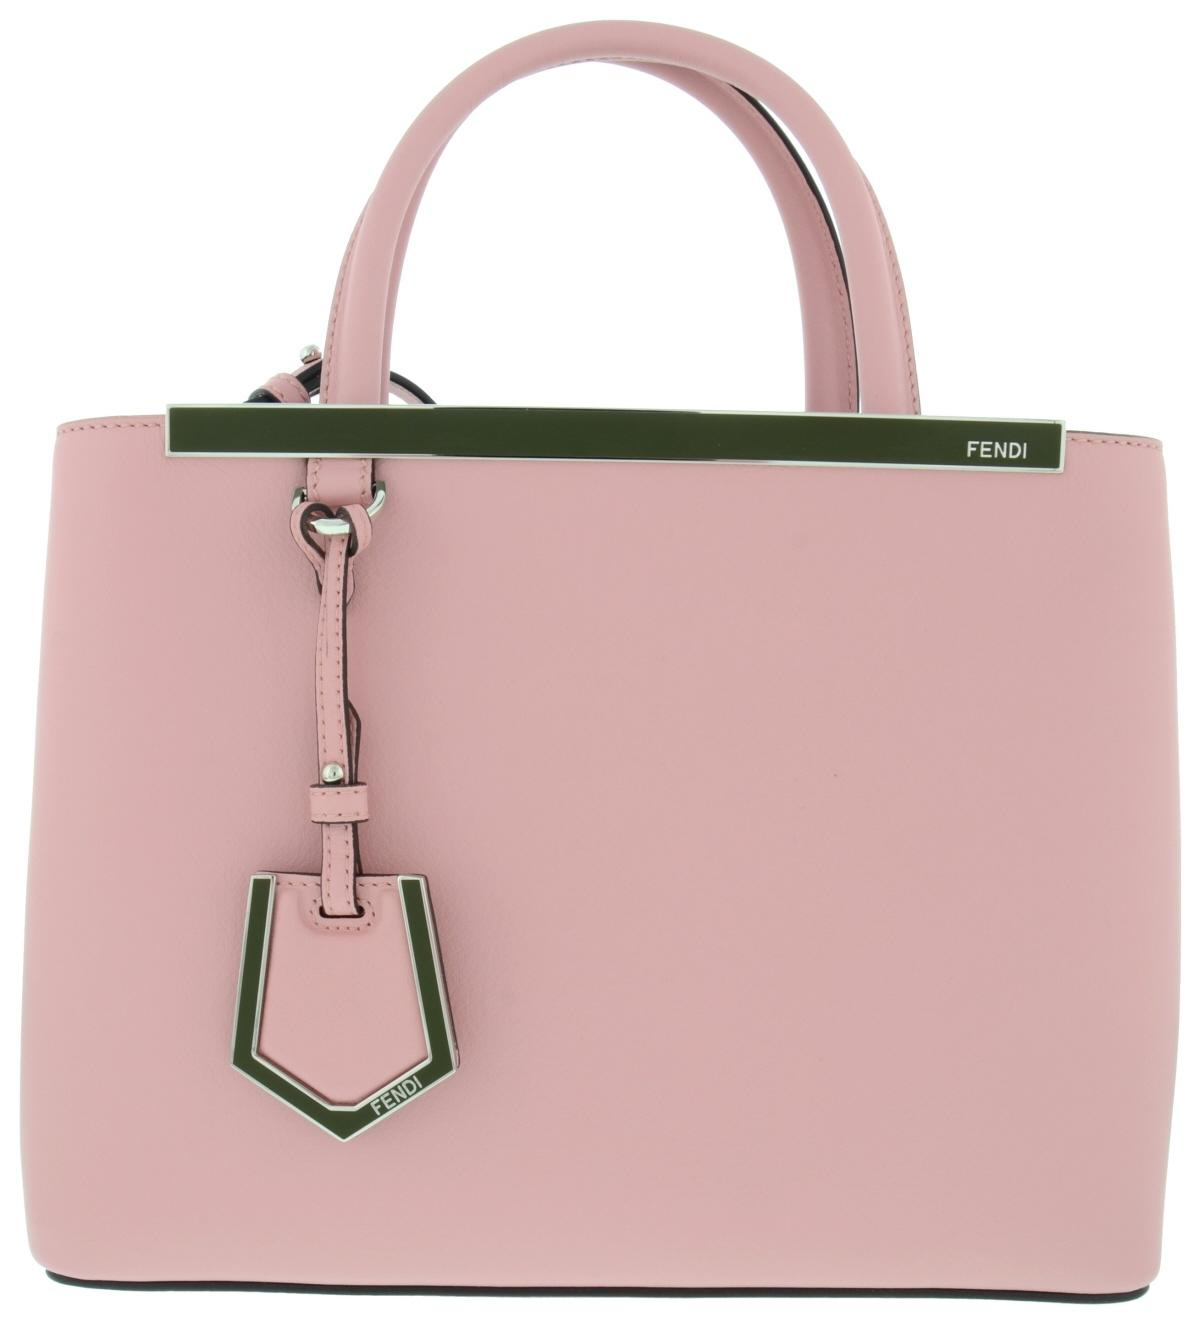 ... new style fendi pink bags up to 70 off at tradesy a028d 1b3c7 ... caf536de3e0ba